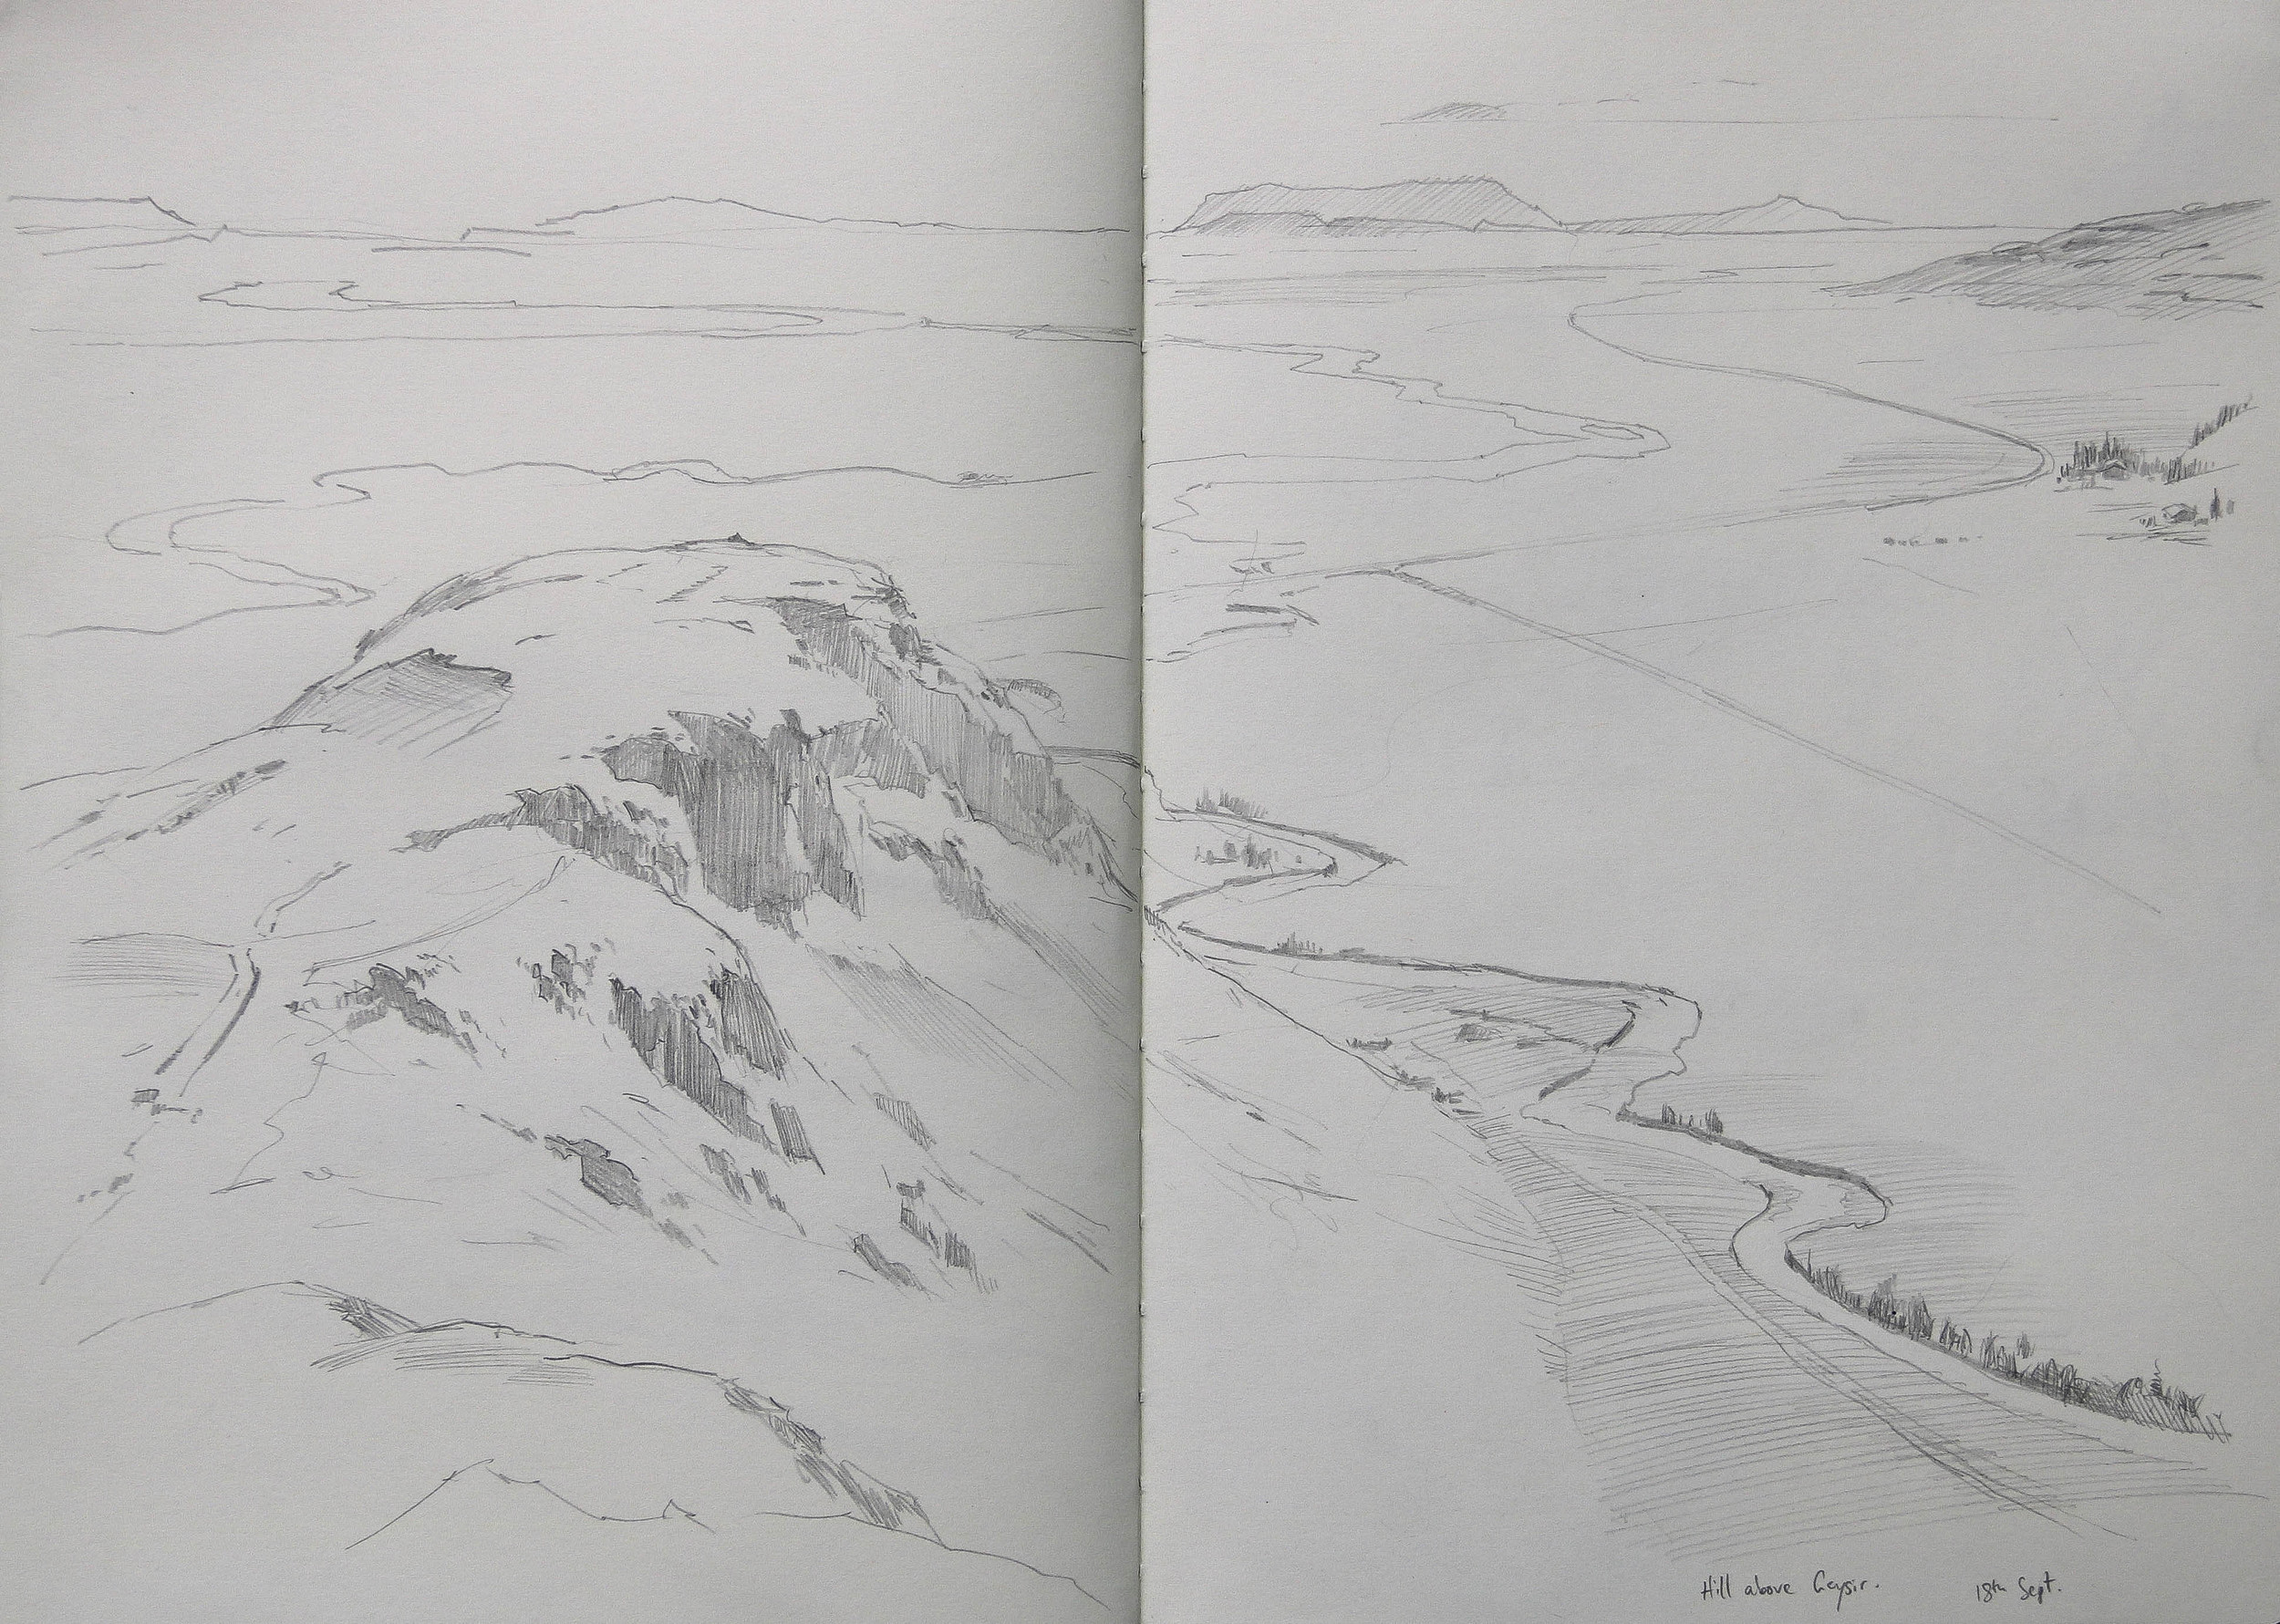 Pencil sketch, looking south from Geyser.